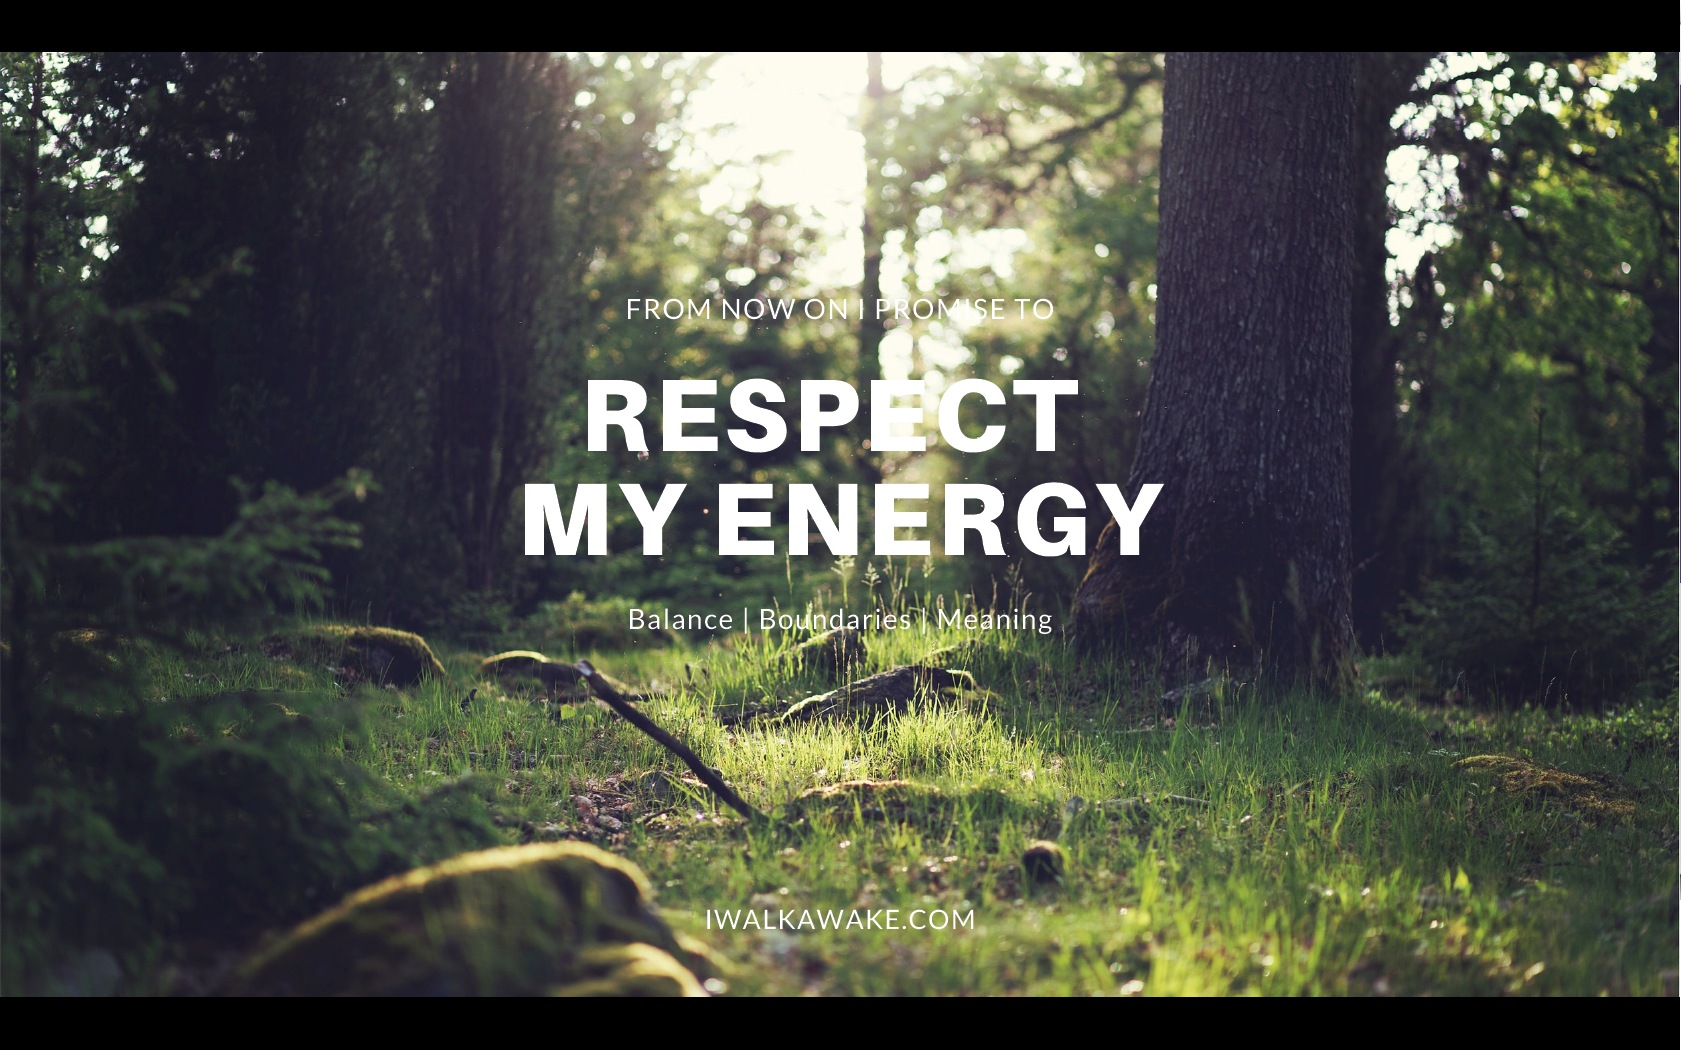 Respect_my_energy_screensaver.png